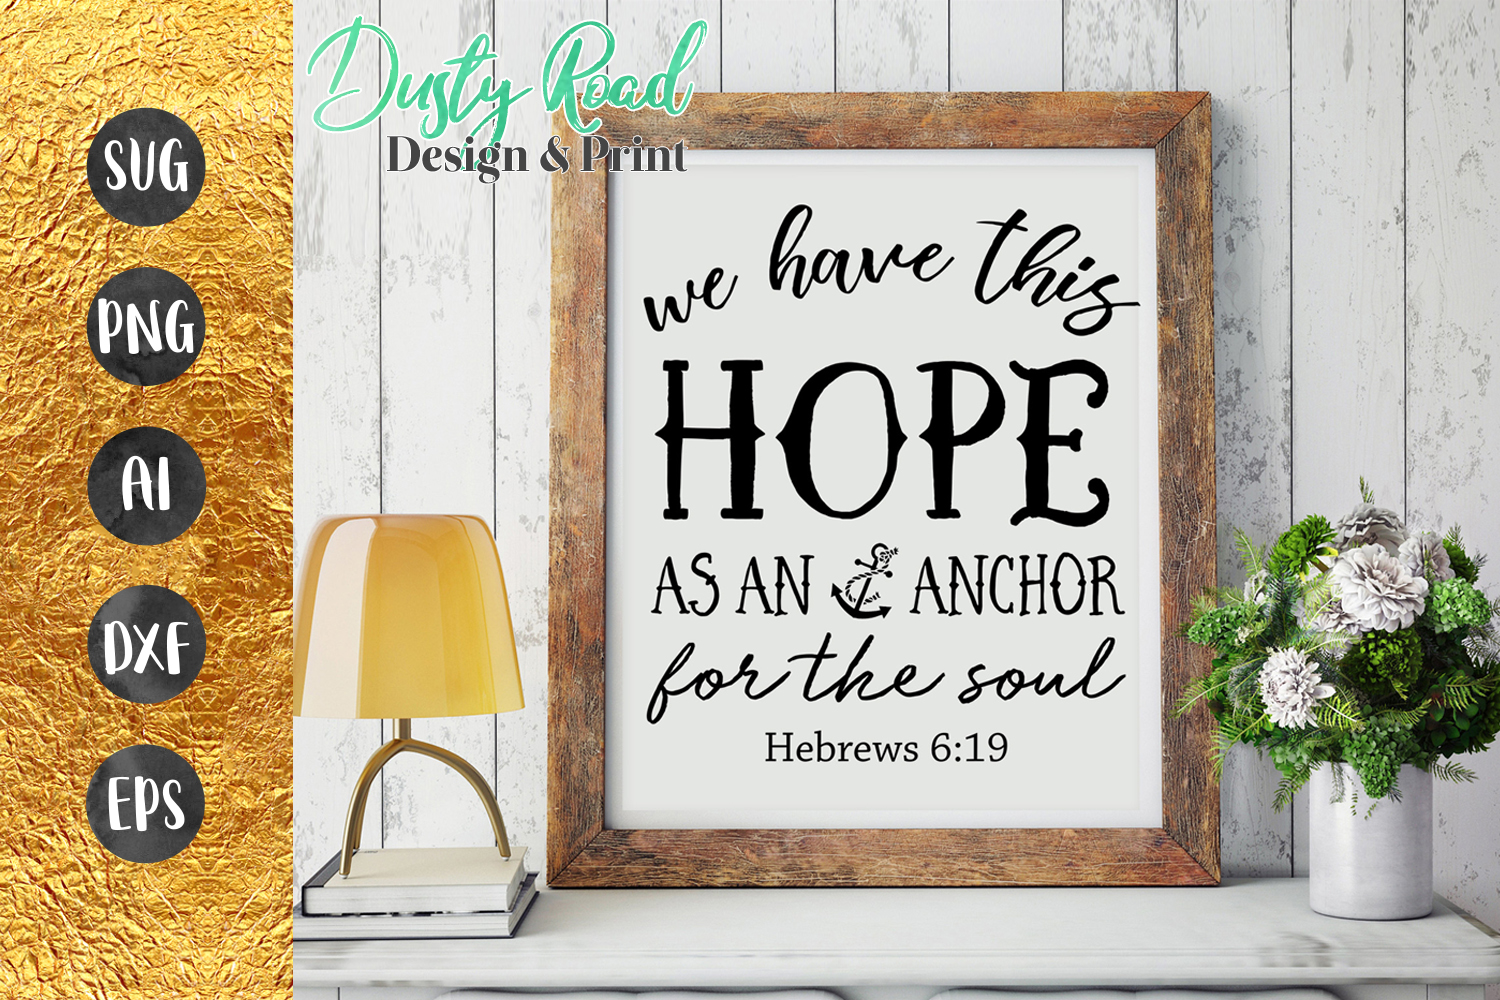 SVG & PNG - HOPE as an anchor for the soul - christian example image 1